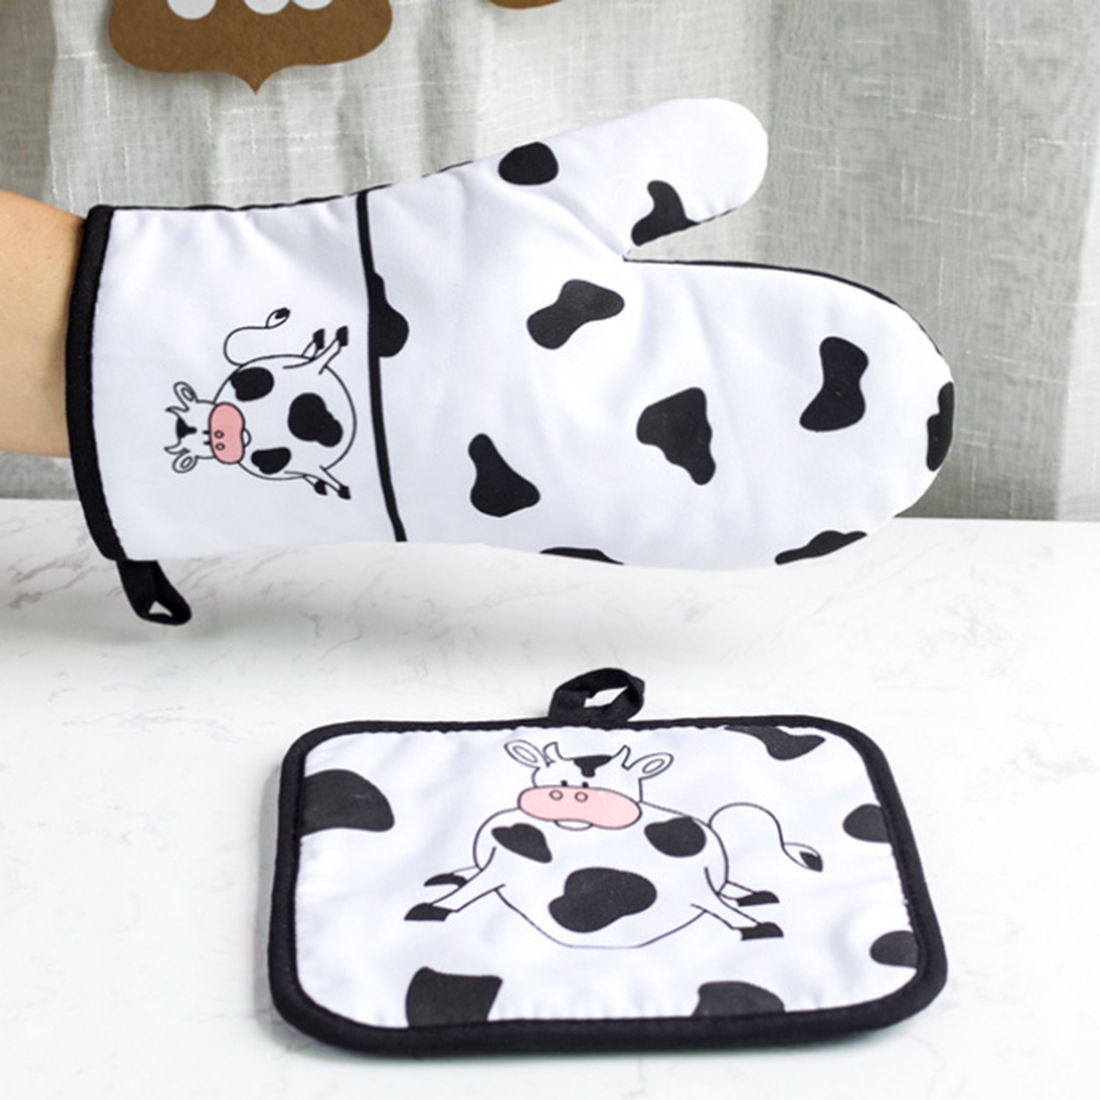 1 Set Dairy Cow Heat Resistant Cotton Glove And Insulation Pot Holder For Microwave Oven And Toaster Kitchen Accessories